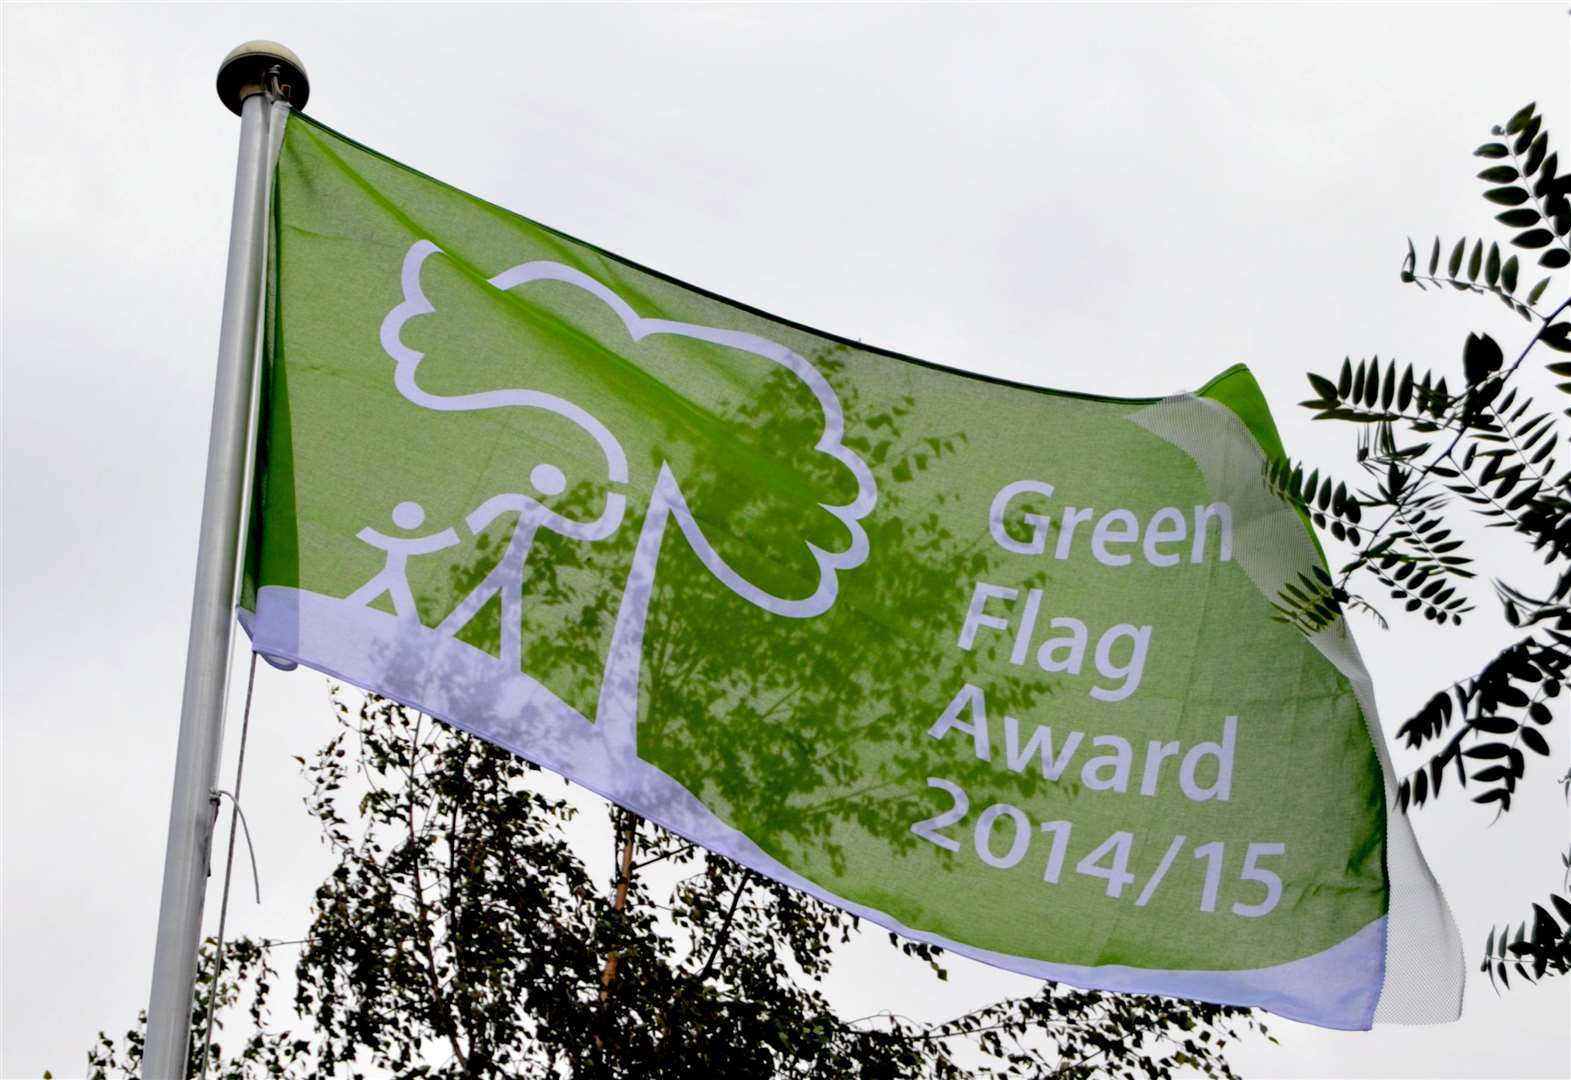 Green flags for Kent parks